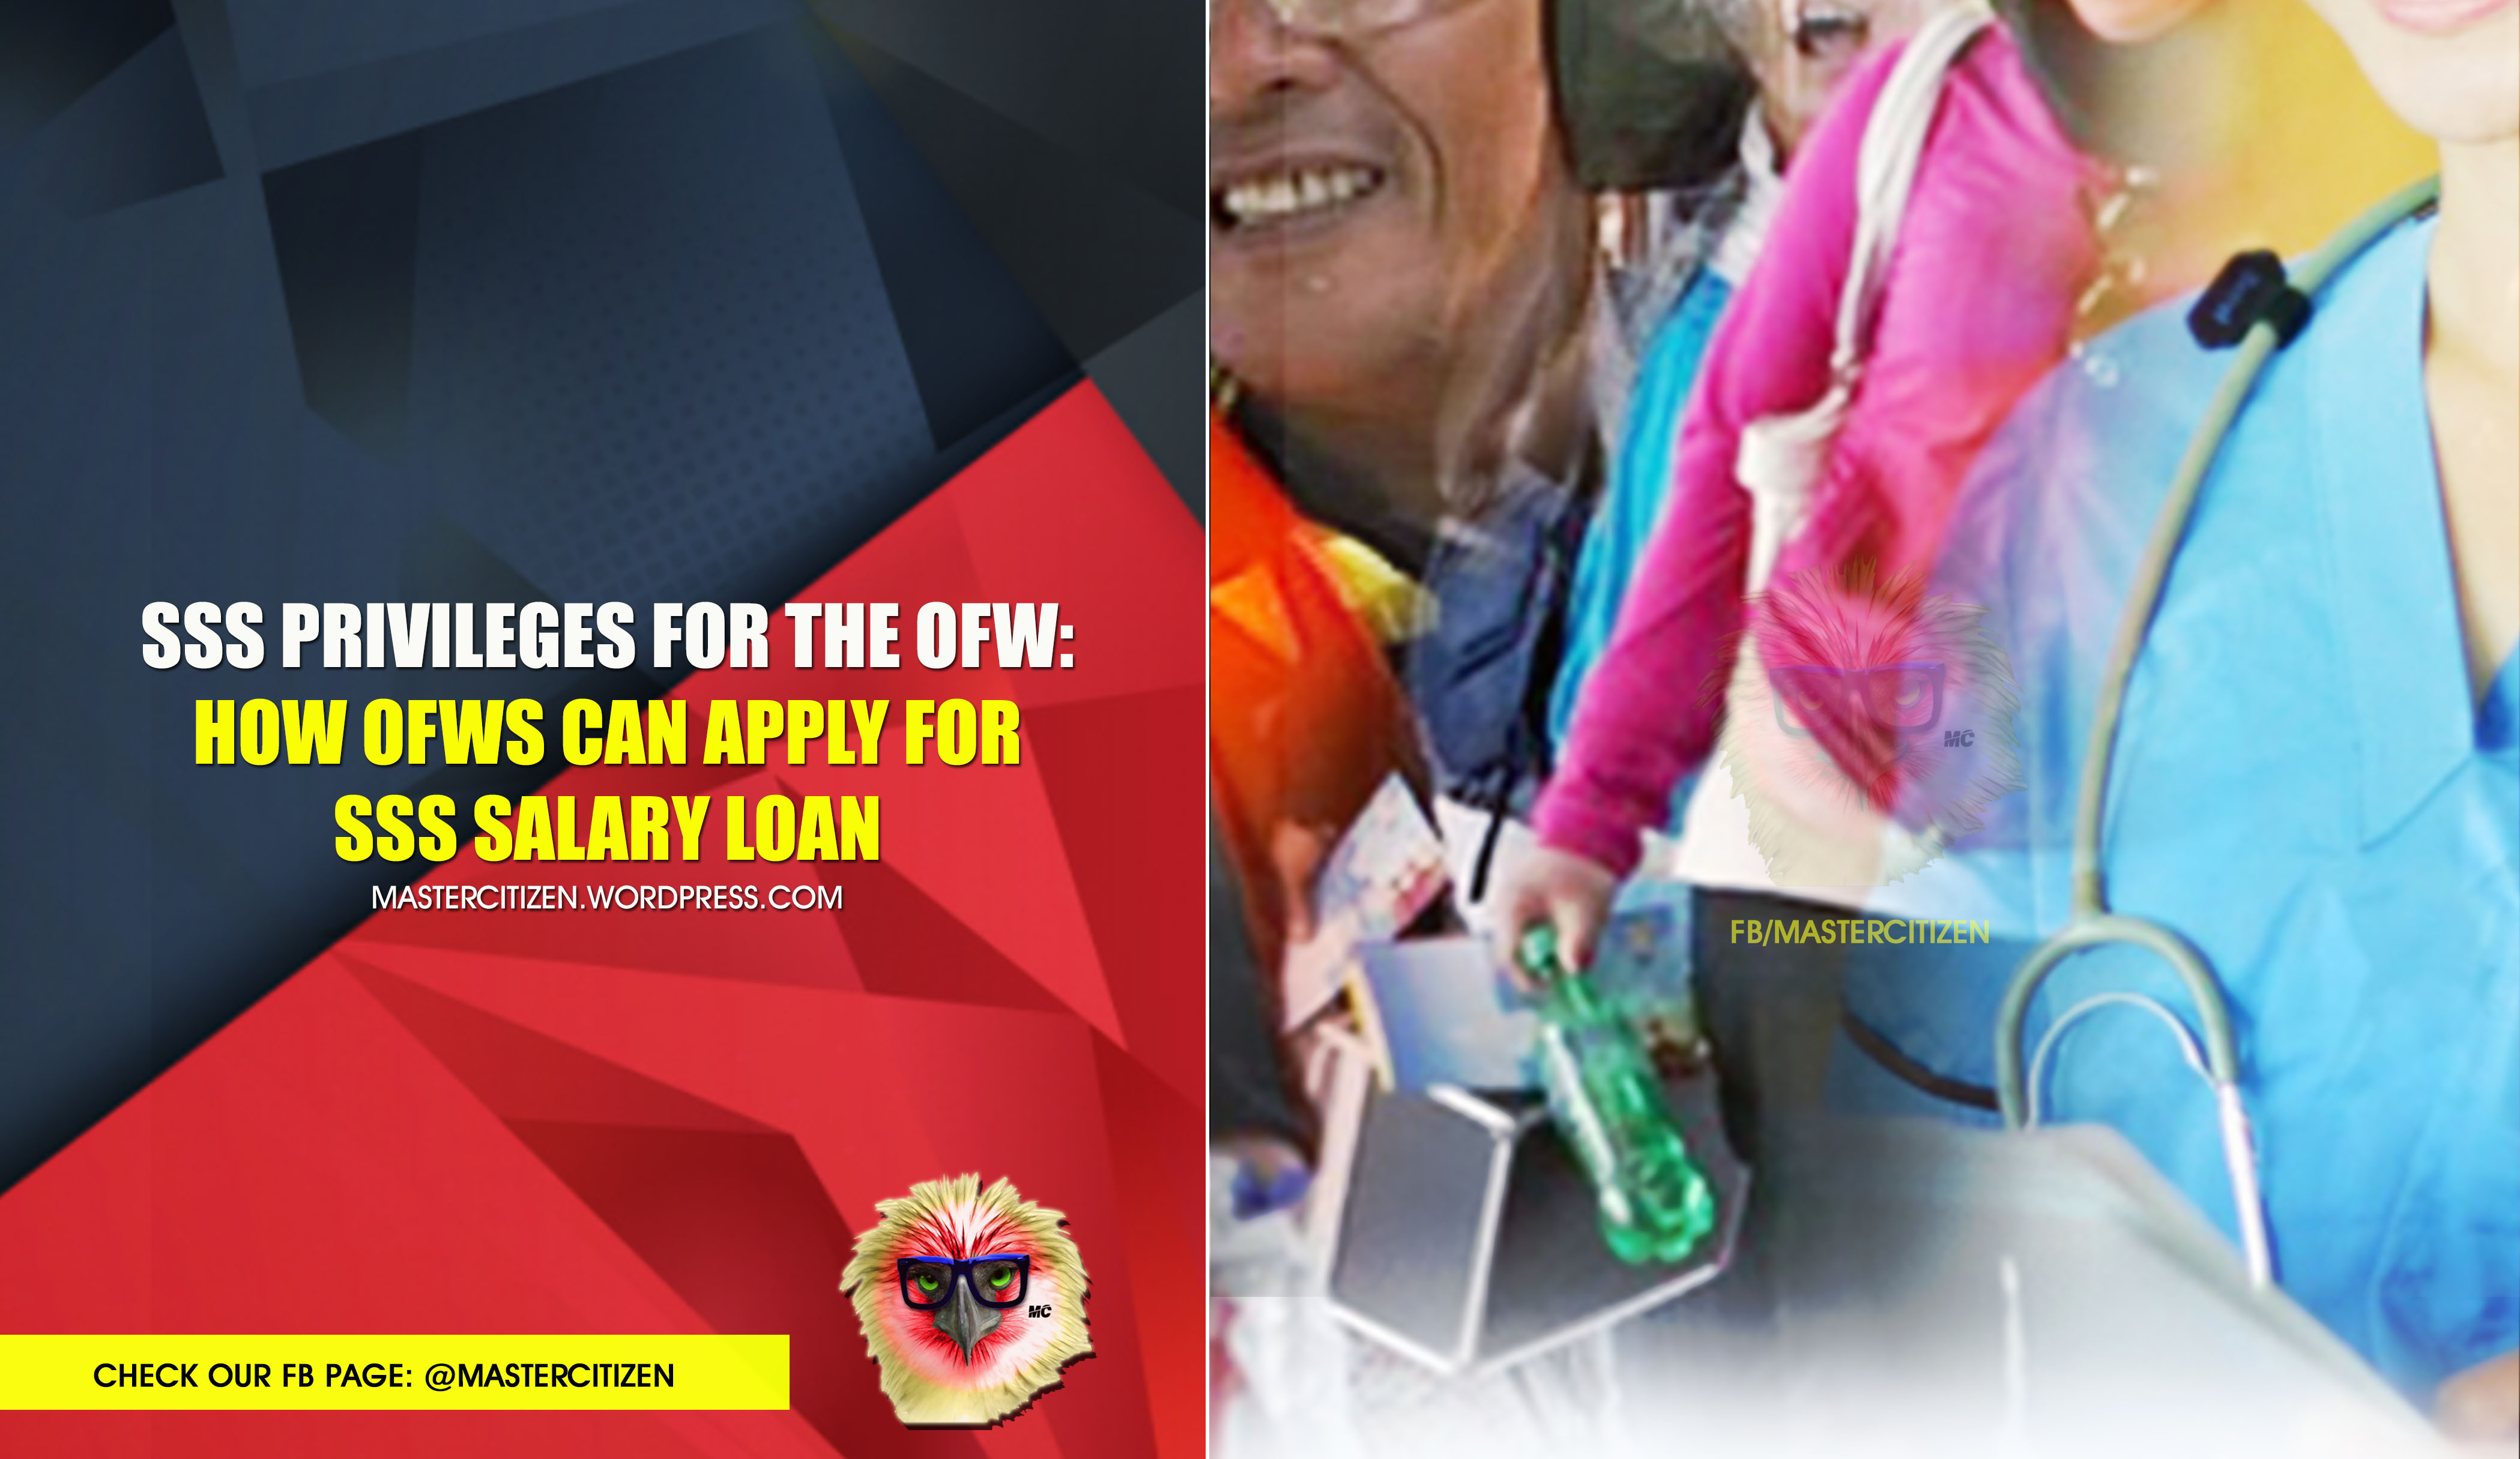 Sss Privileges For The Ofw How Ofws Can Apply For Sss Salary Loan